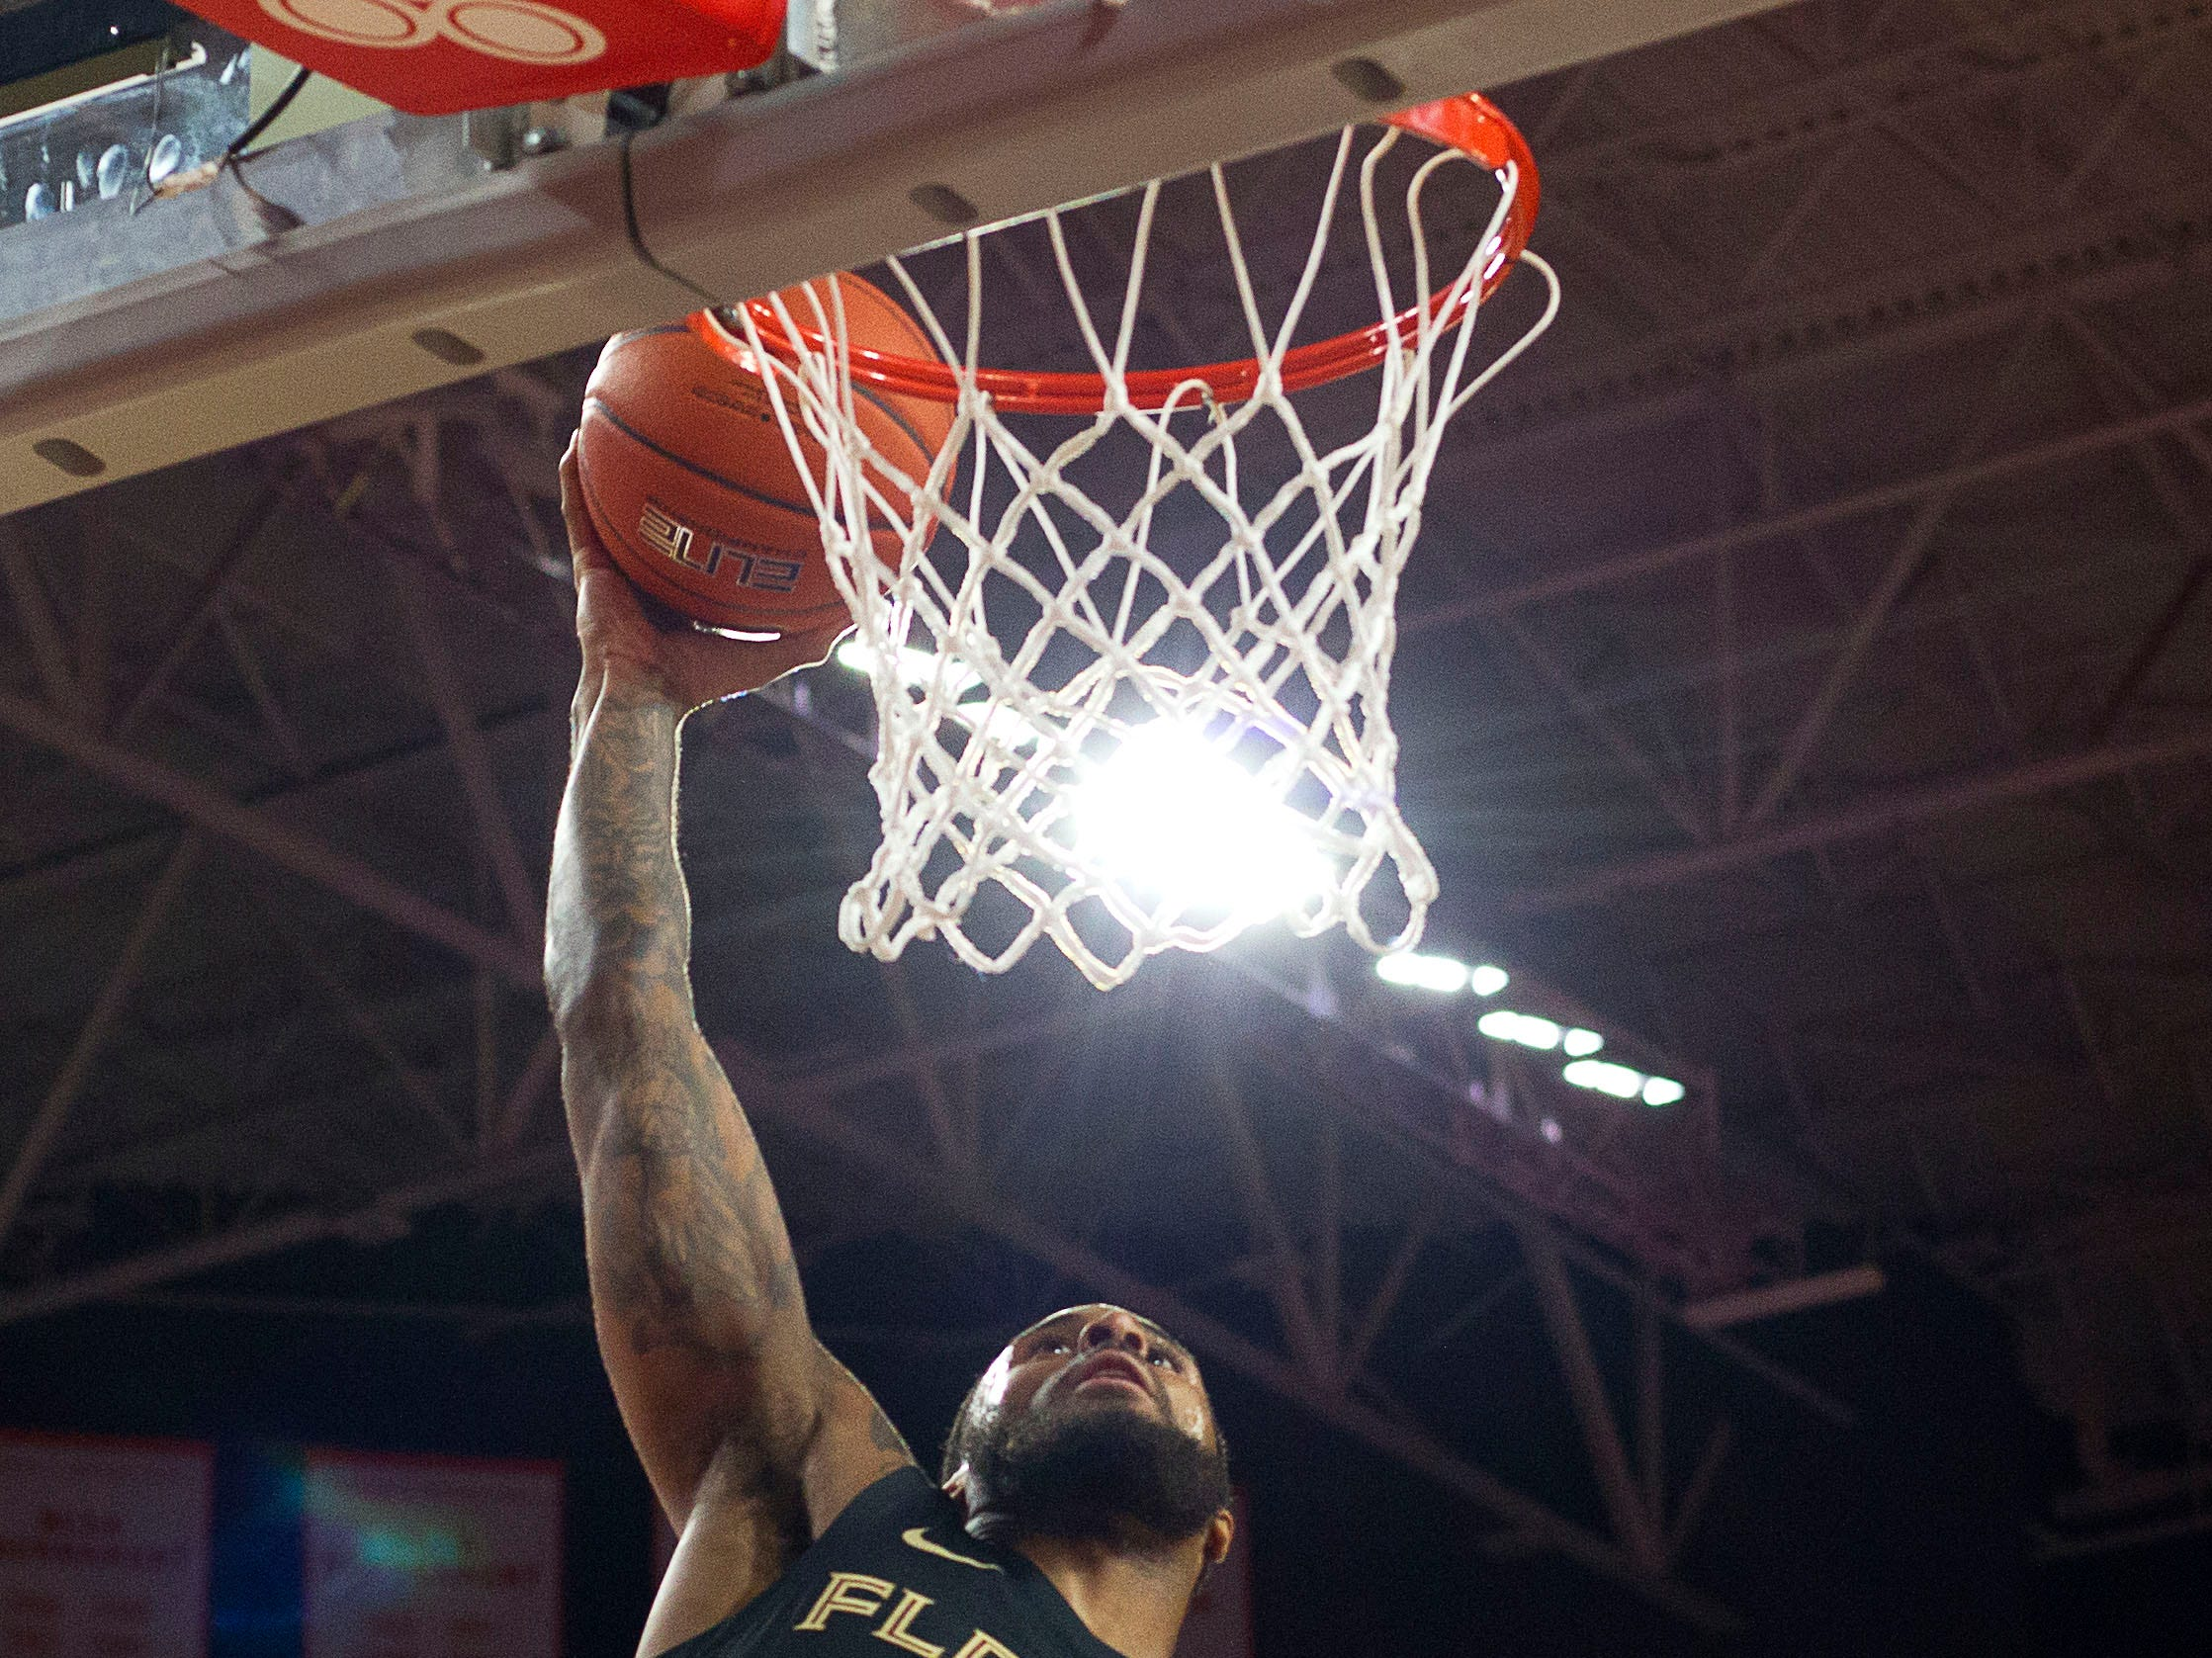 Feb 19, 2019; Clemson, SC, USA; Florida State Seminoles forward Phil Cofer (0) dunks the ball during the first half against the Clemson Tigers at Littlejohn Coliseum. Mandatory Credit: Joshua S. Kelly-USA TODAY Sports